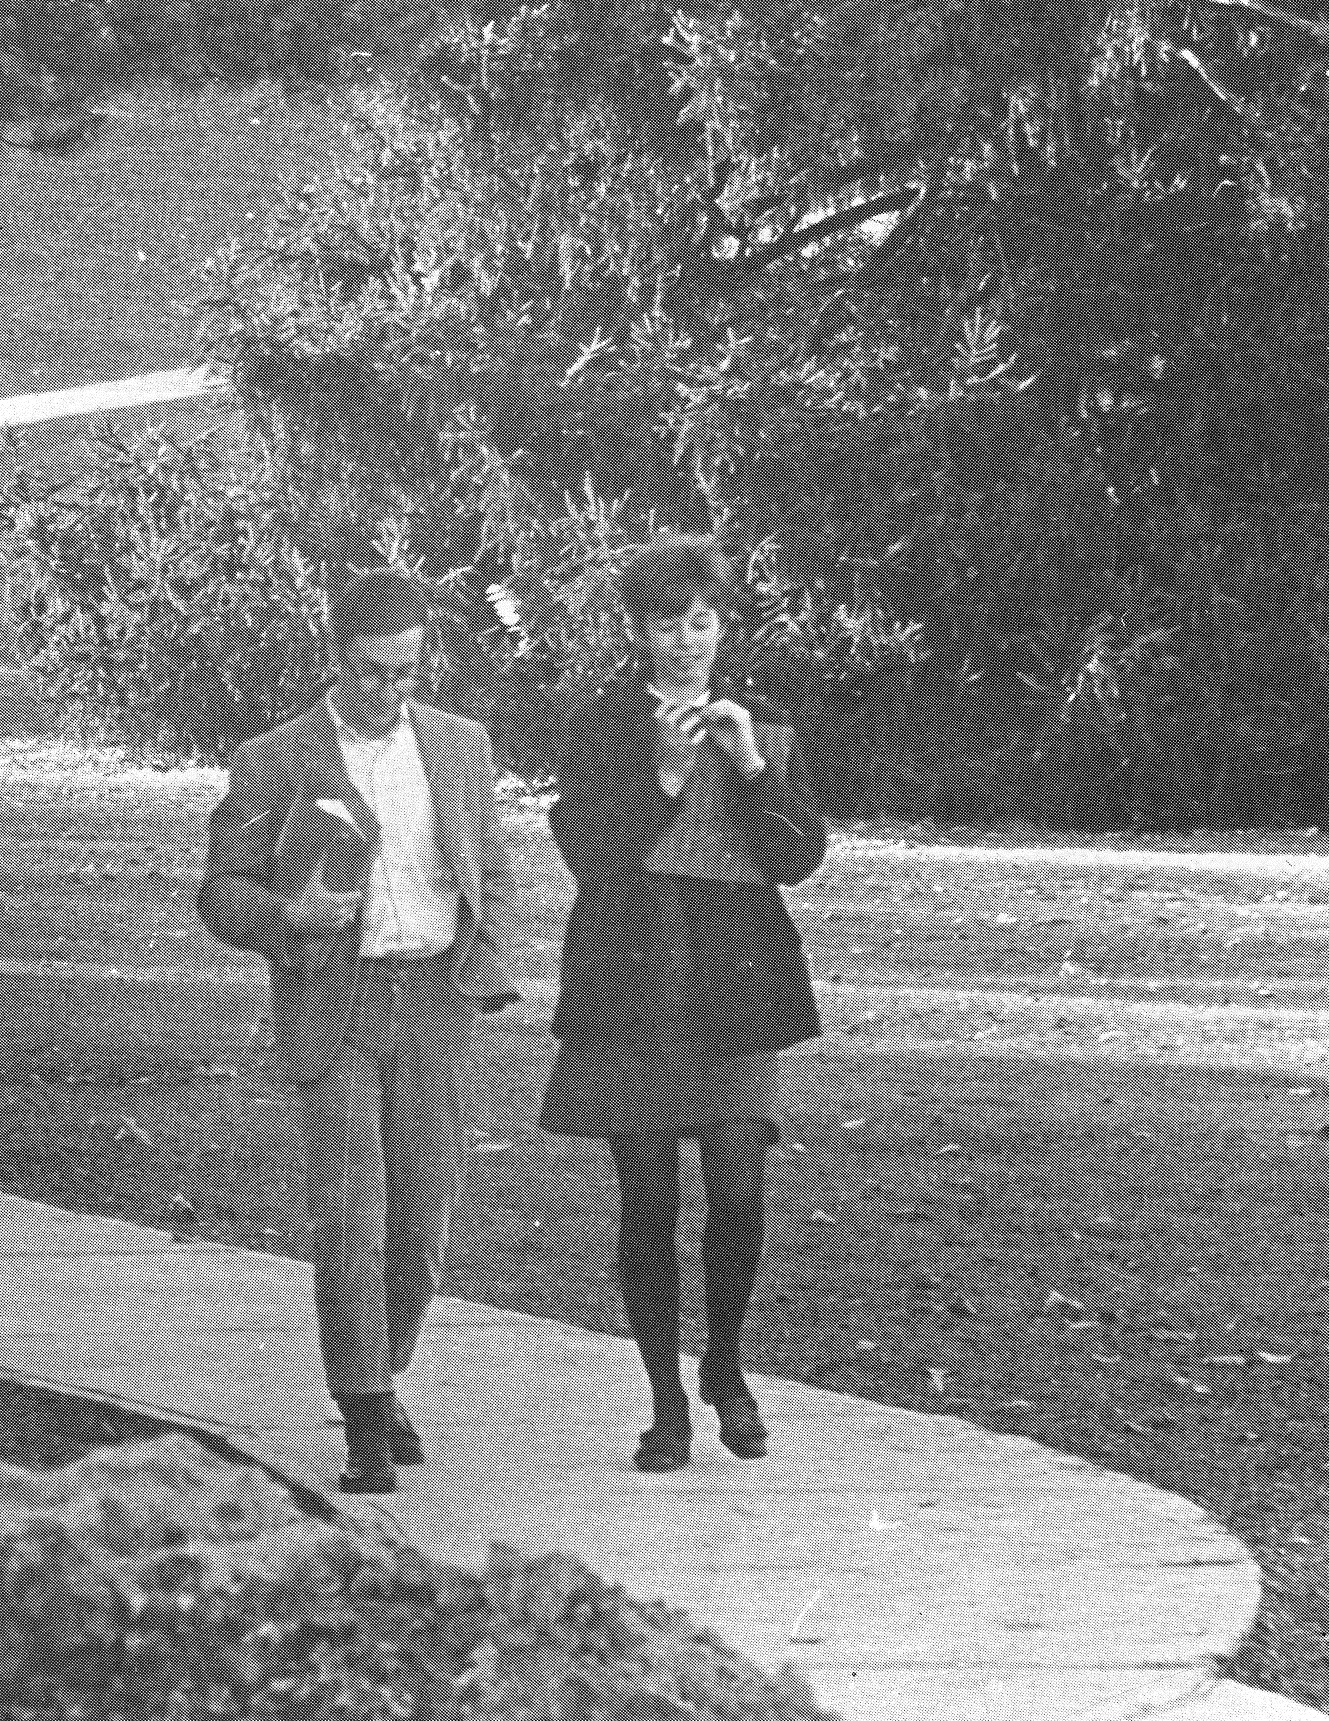 Heading to class, 1969